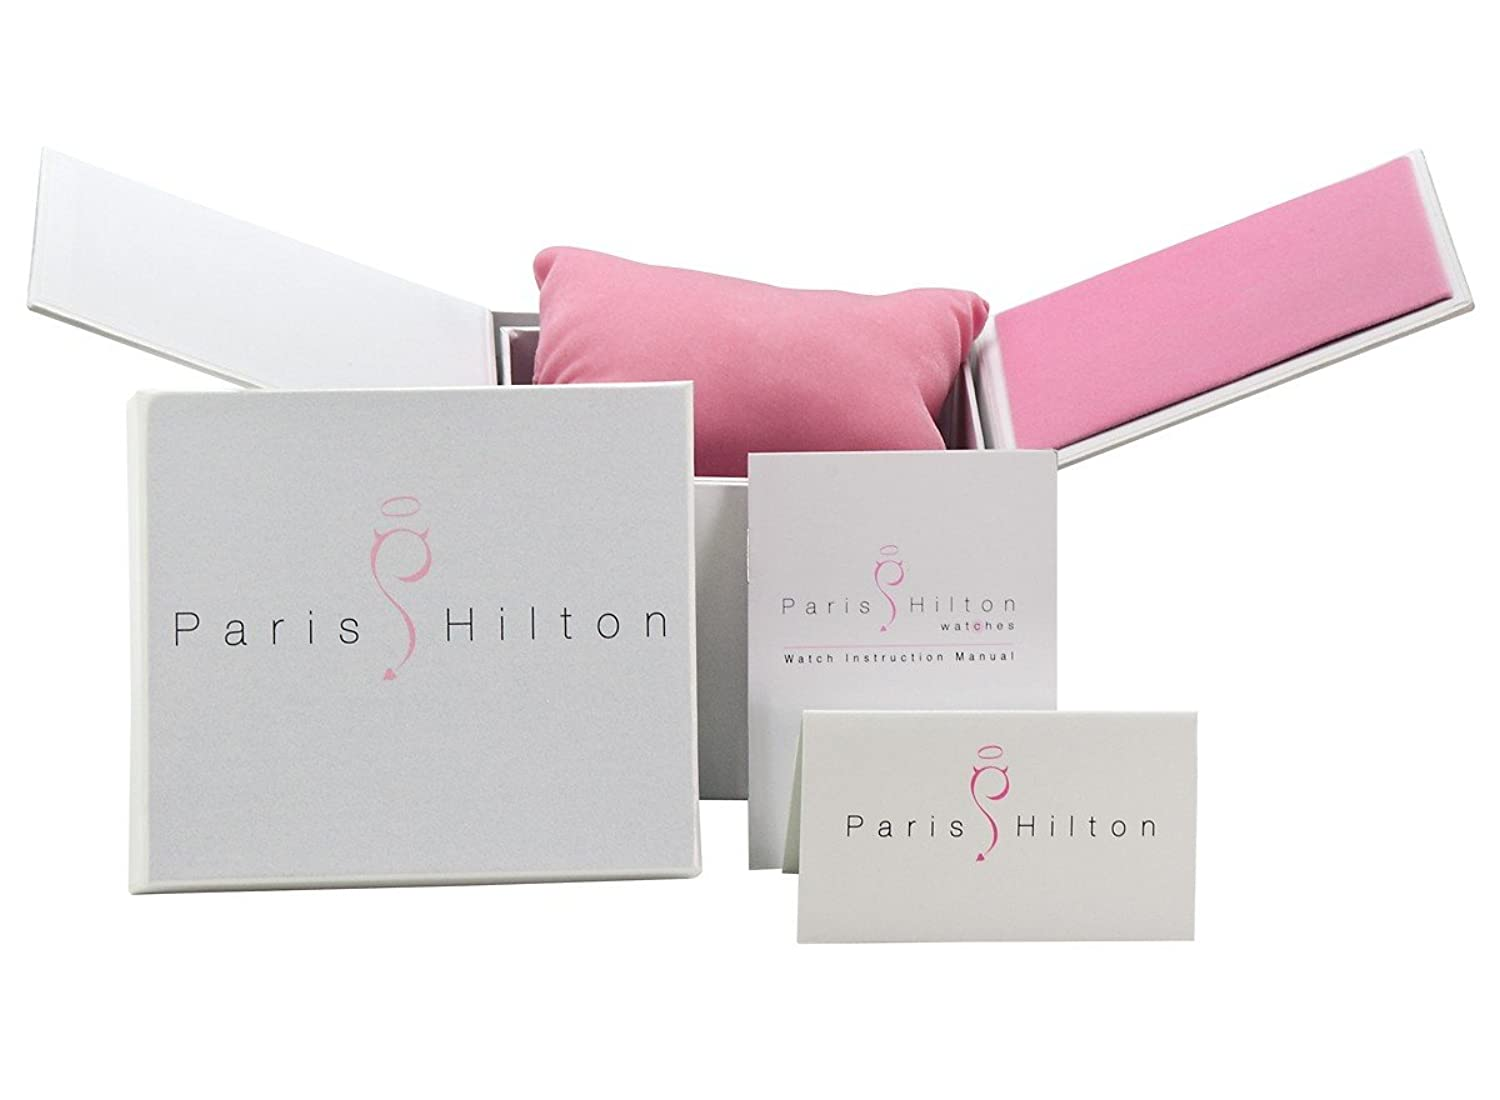 Paris Hilton Small Square Elegante-Damenuhr Design Highlight